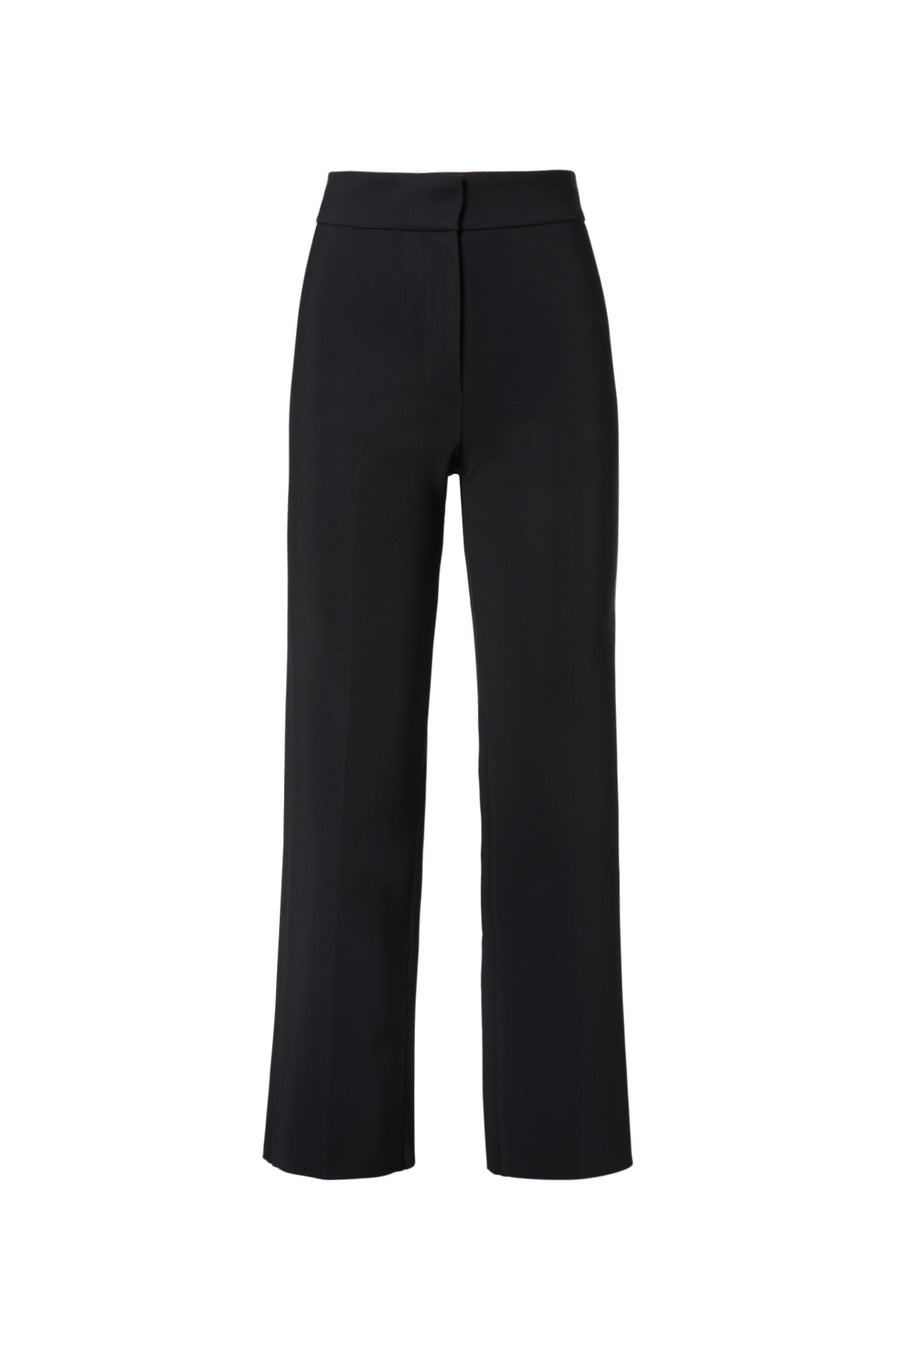 SCUBA PANT, HIGH WAISTED PANT, FLY FRONT CLOSURE, CENTRE FRONT CREASE AND RAW HEM, COLOR BLACK